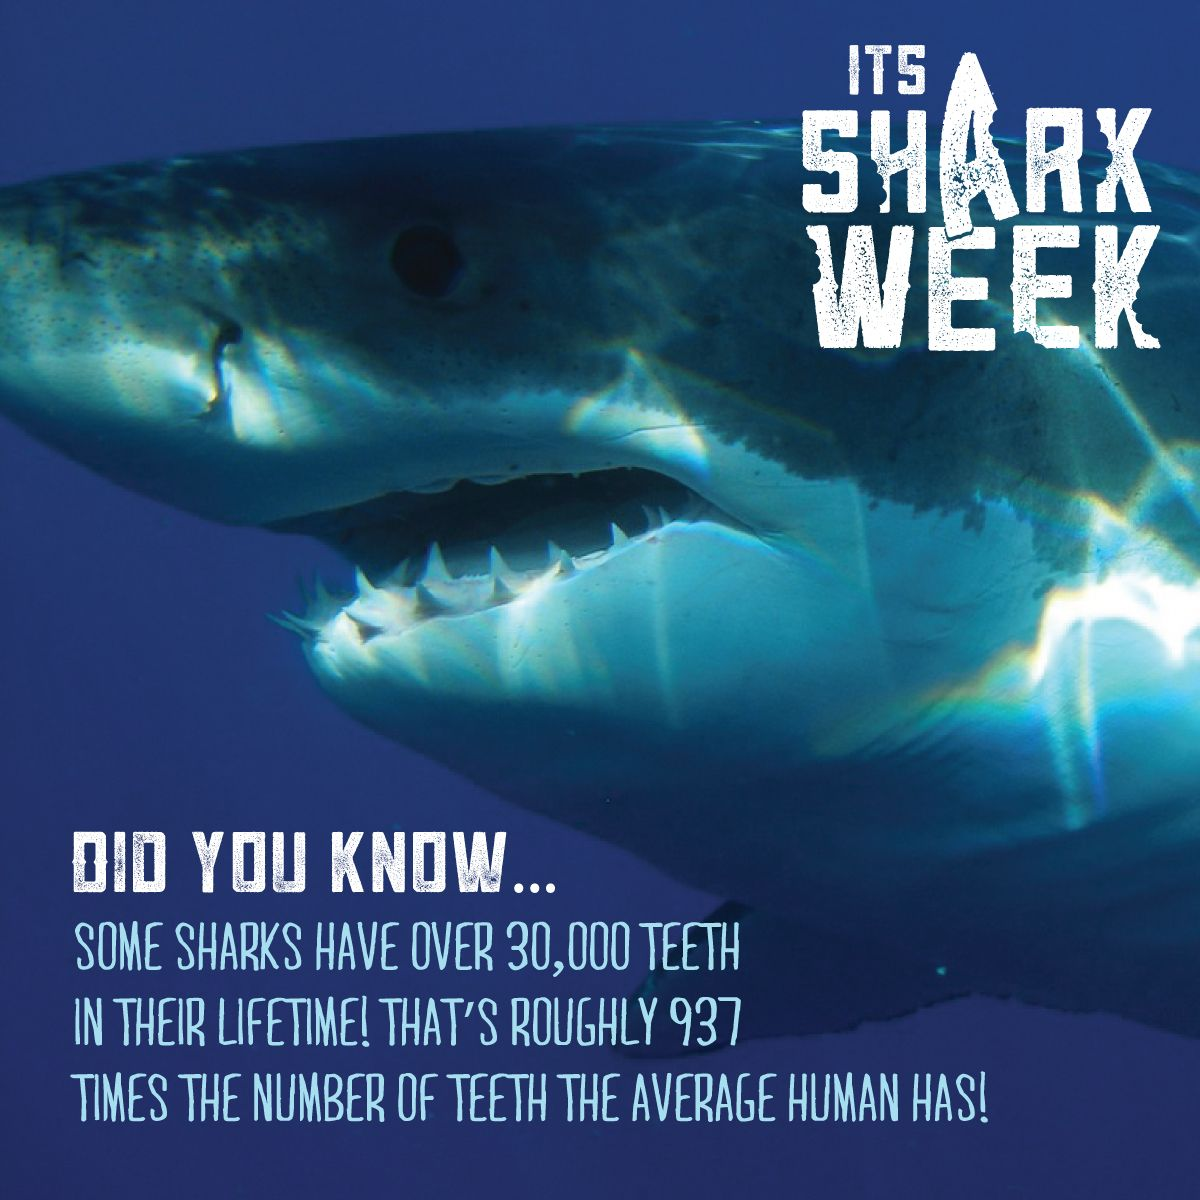 THERE'S NO ANIMAL more famous for their teeth than sharks